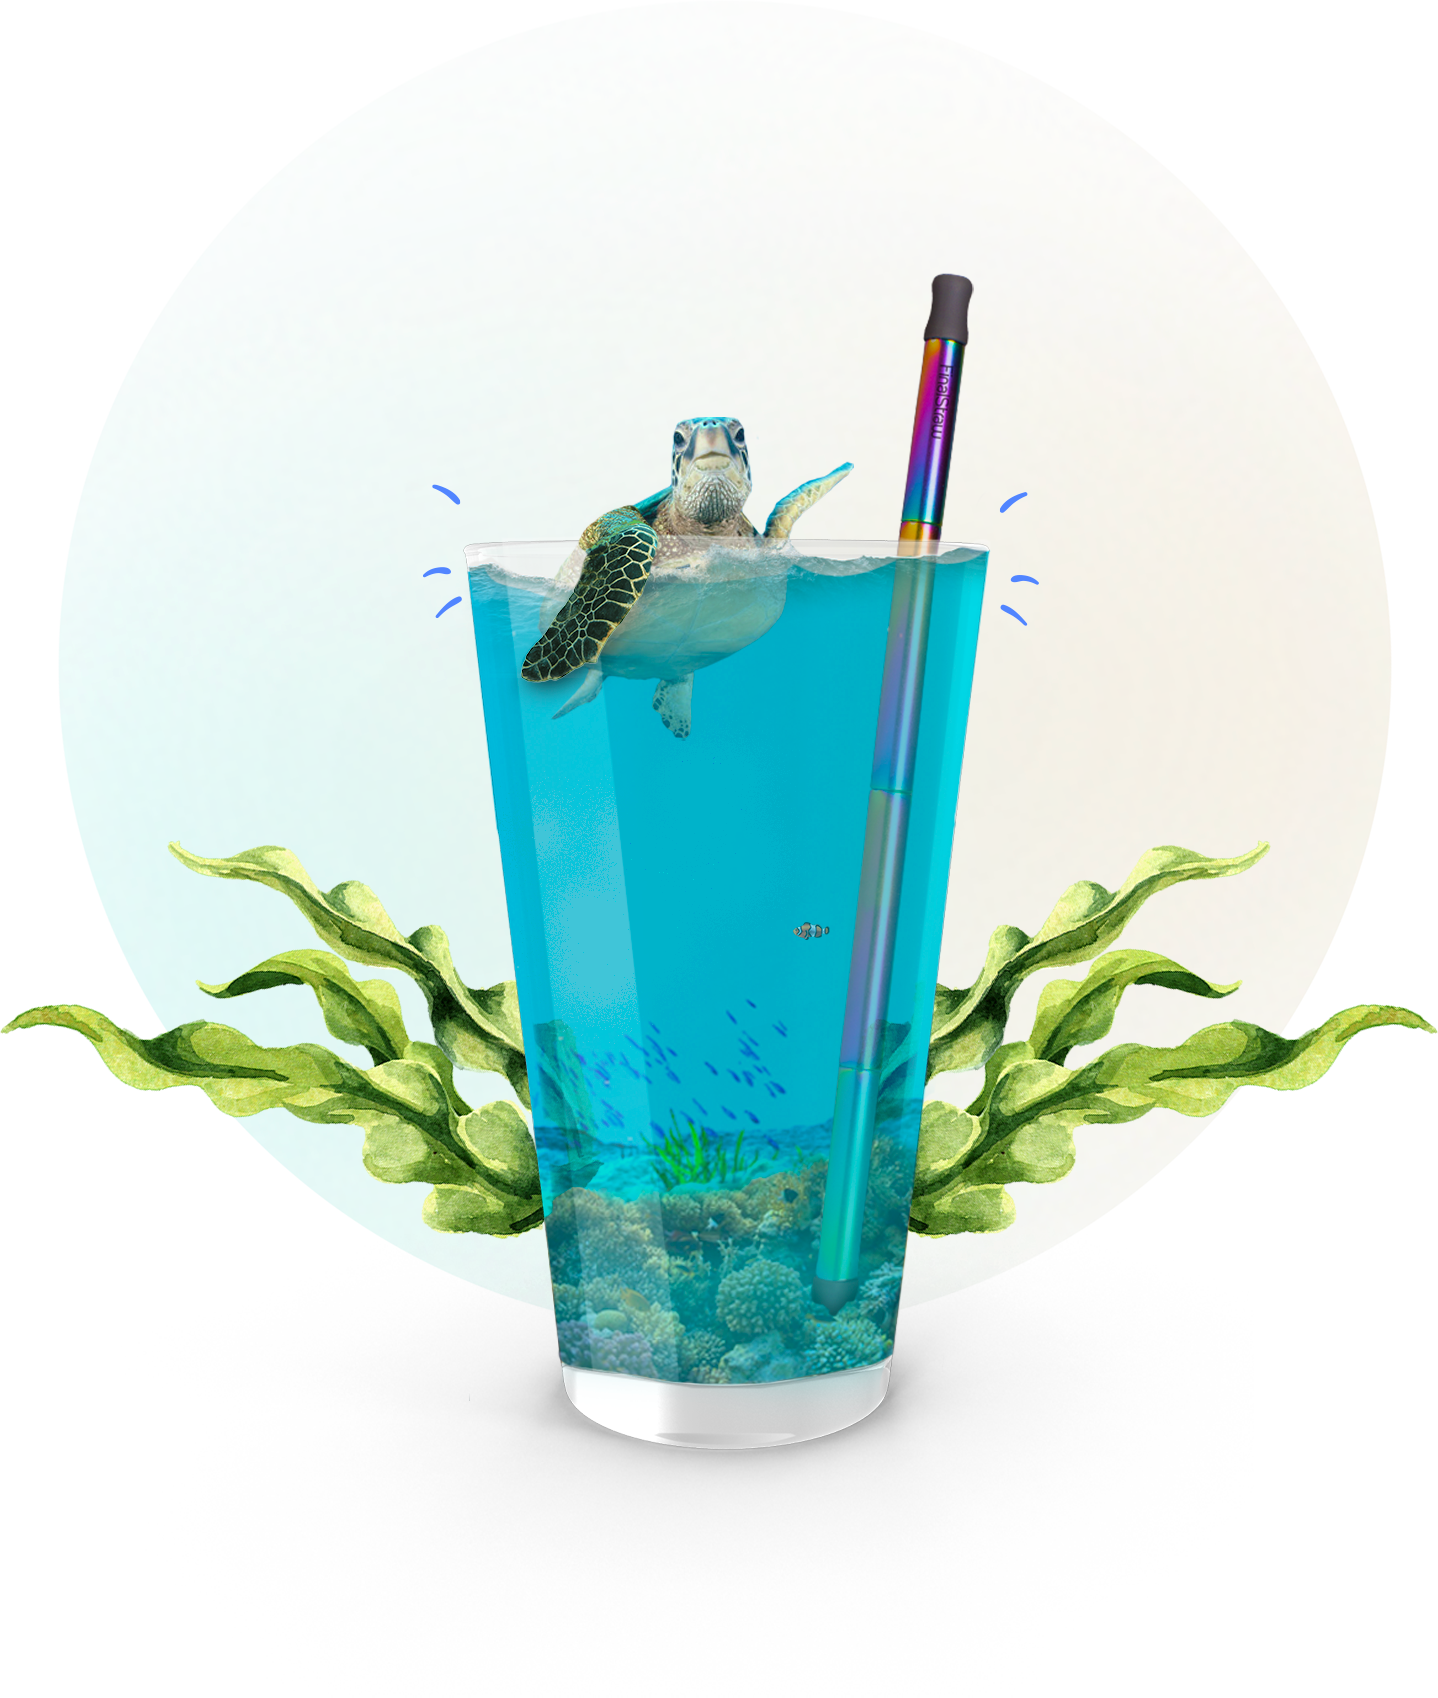 straw in drink with turtle